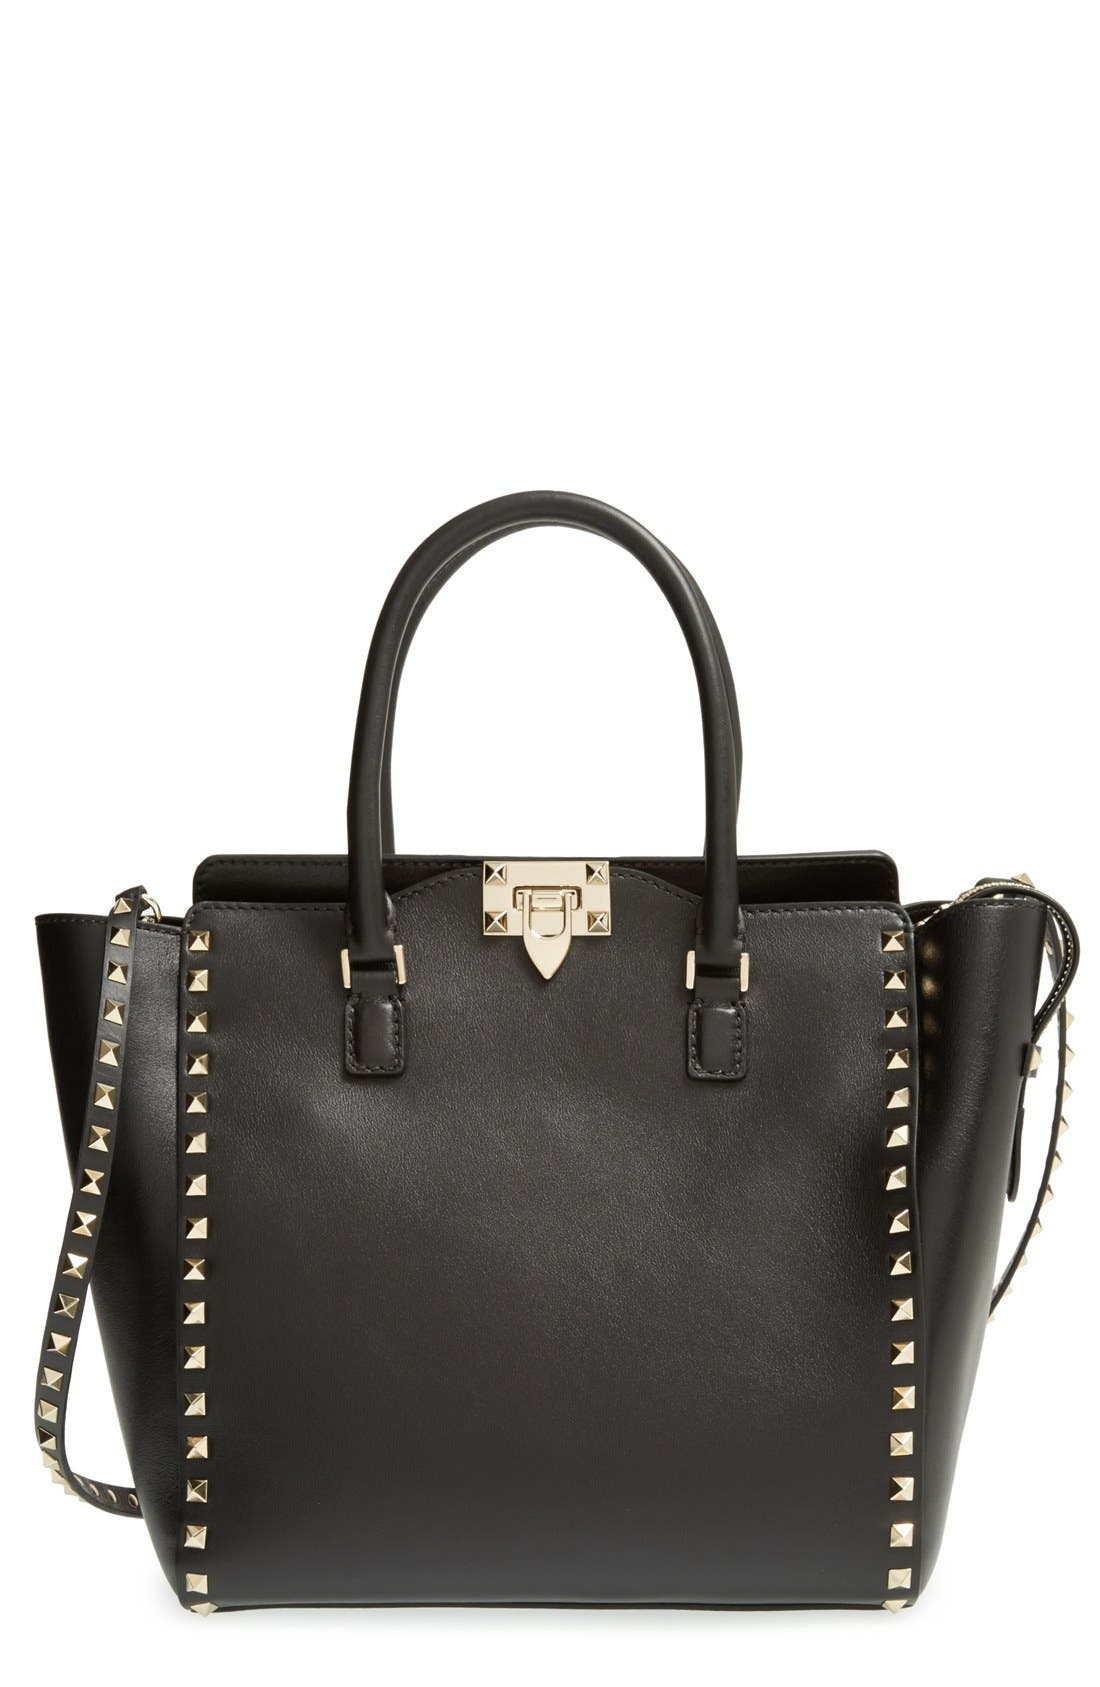 VALENTINO GARAVANI 'Rockstud' Leather Double Handle Tote